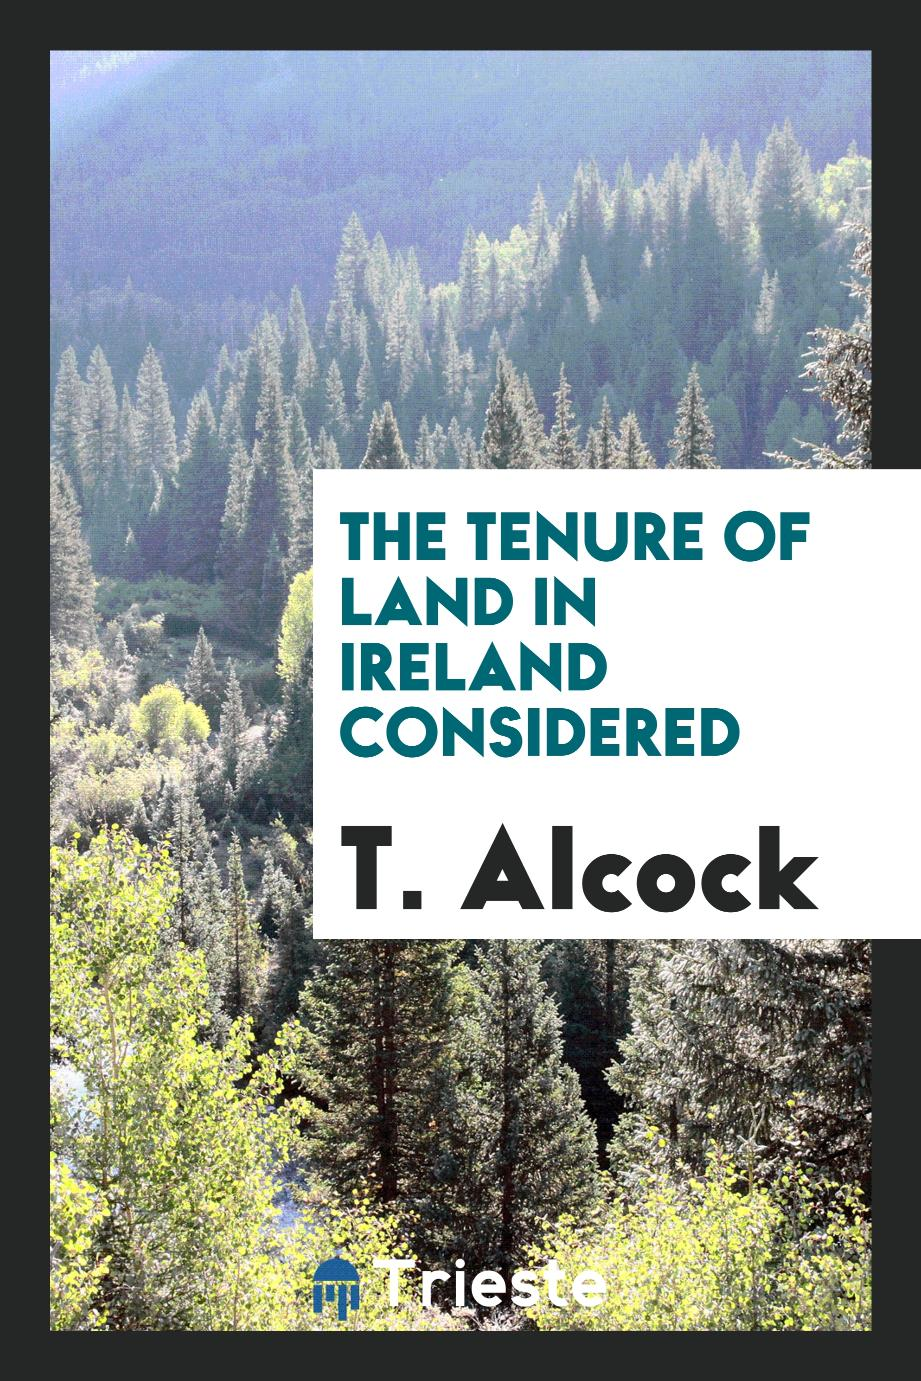 The Tenure of Land in Ireland considered